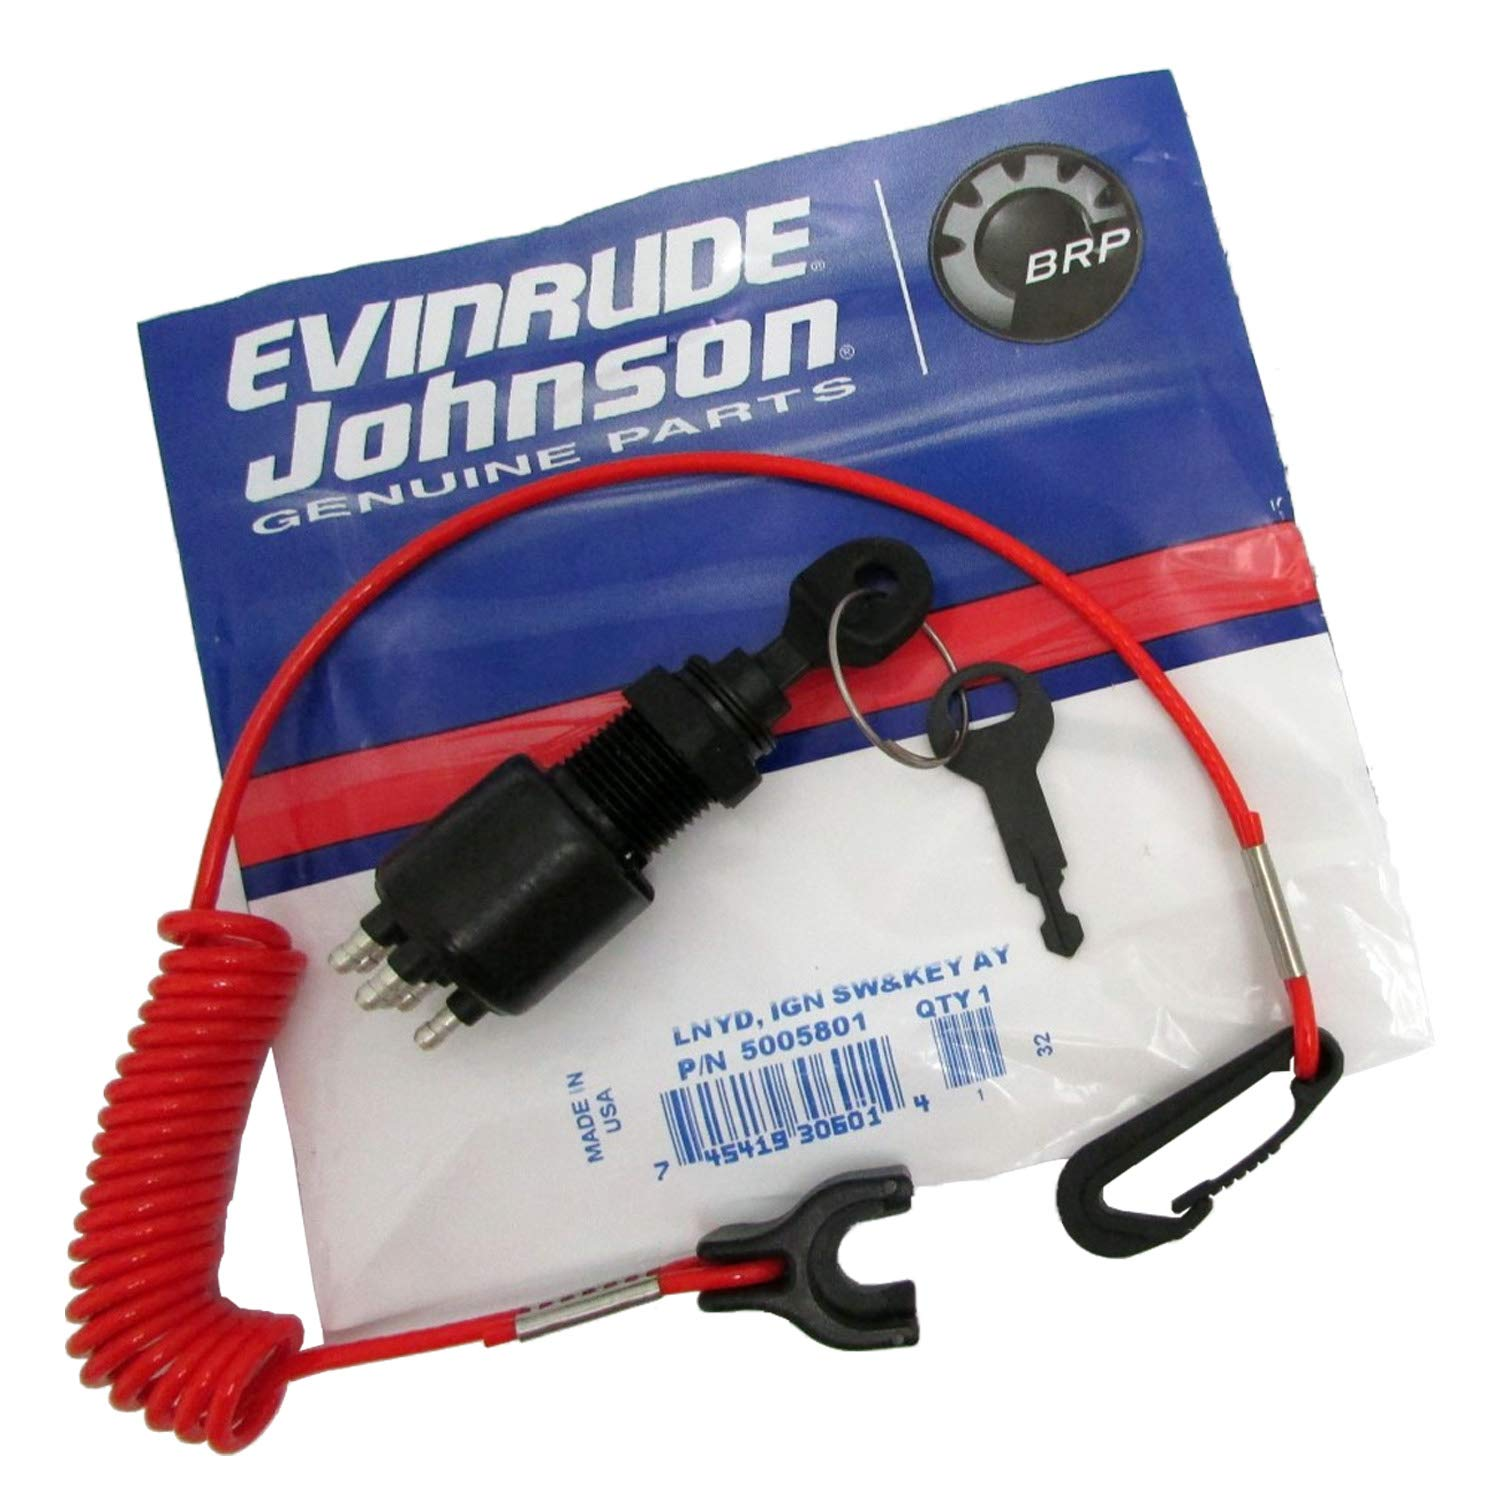 amazon com lnyd ign sw key ay boat engine spare parts kits rh amazon com Evinrude Ignition Switch Wiring Diagram Key Switch Wiring